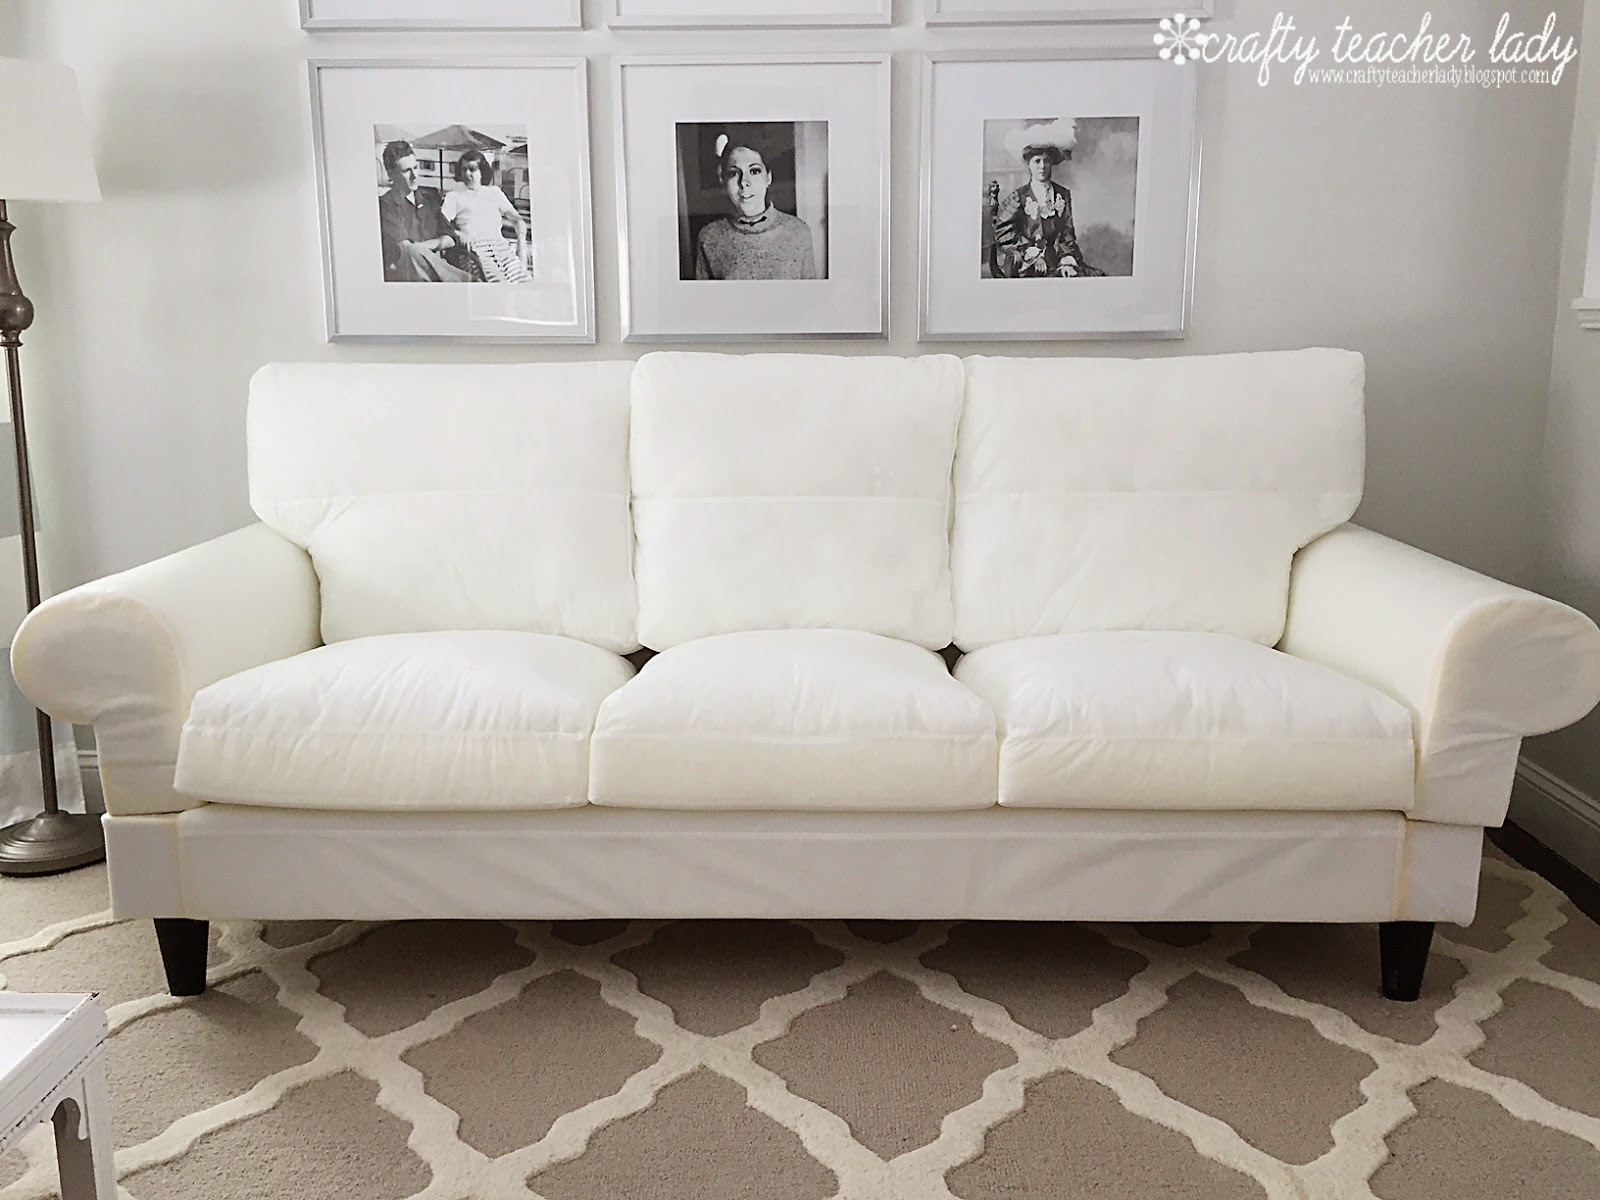 Rp Sofa Dimensions How To Clean White Faux Leather Erktop Stkittsvilla